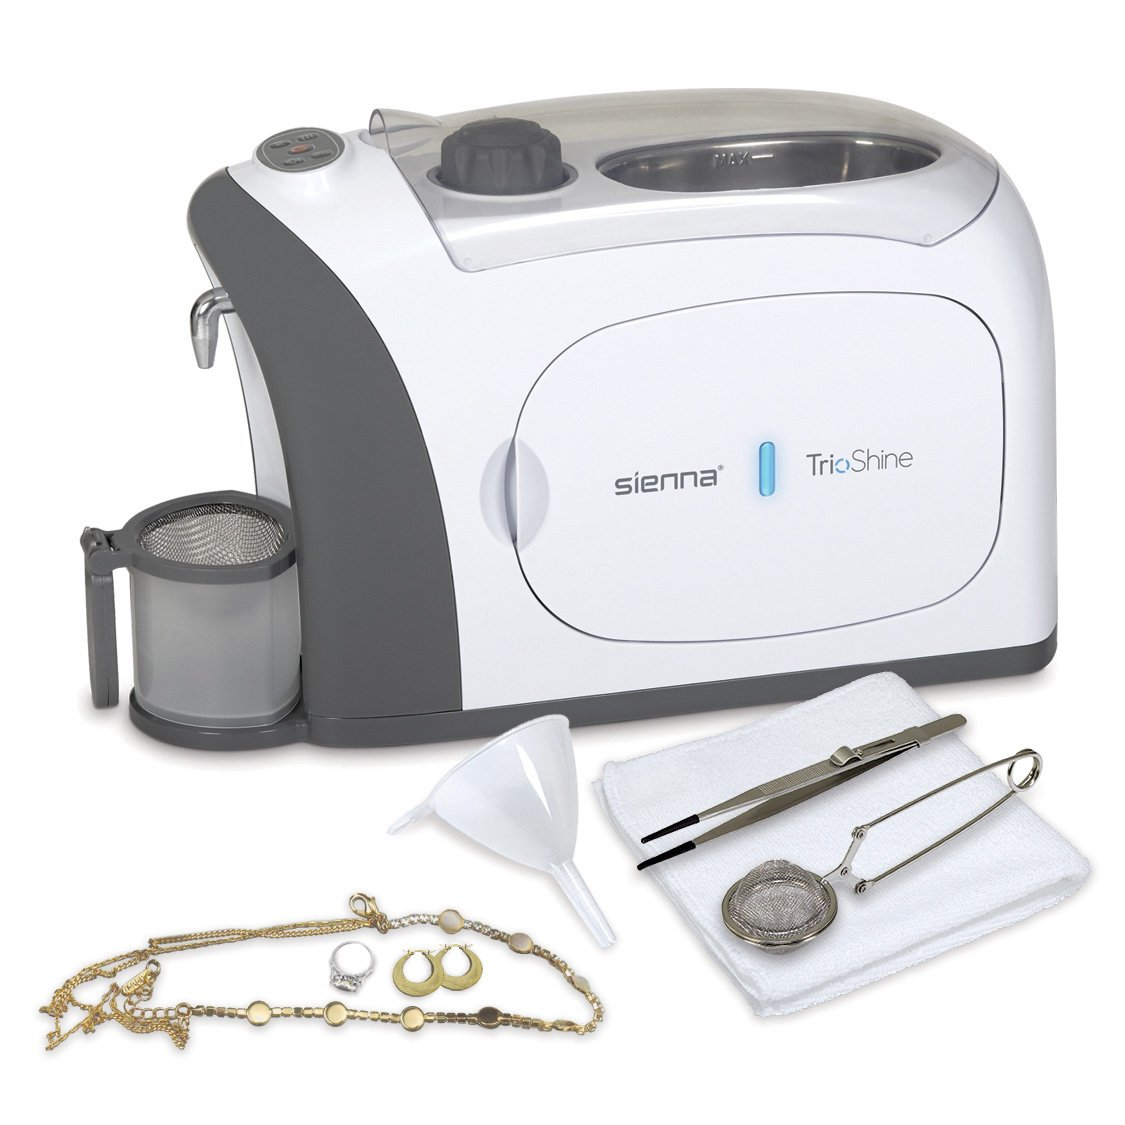 TrioShine 3 in 1 Ultrasonic Jewelry Cleaner Machine, Jewelry Steam Cleaner, UV Light Sanitizer (Kills 99.9% Bacteria) | Professional Grade for Rings, Watches, Earrings, Pacifiers, Eyeglasses, Dentures